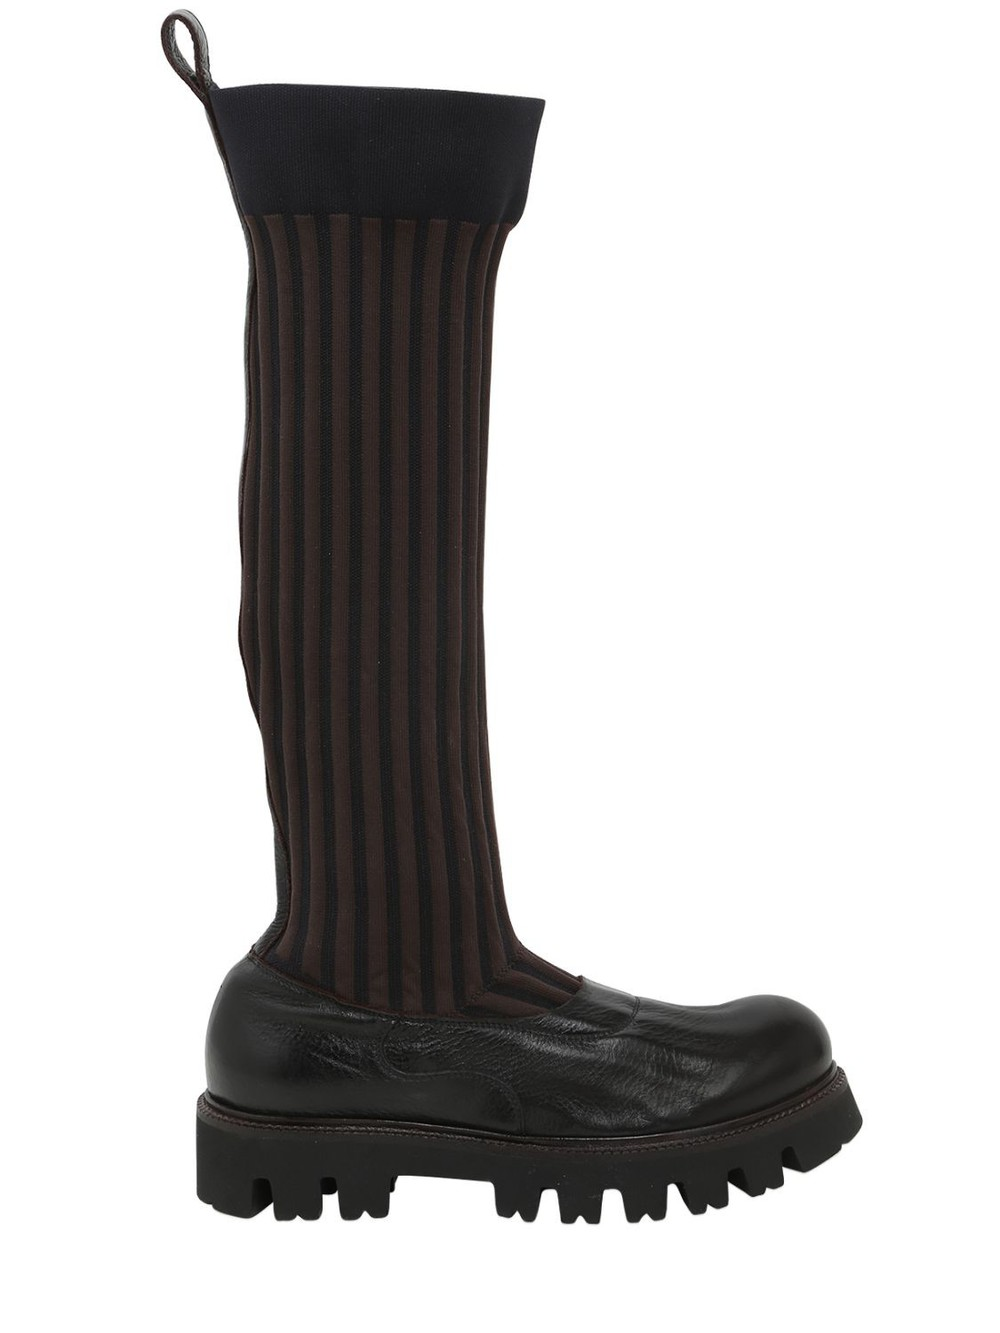 ROCCO P. 30mm Elastic & Leather Boots in black / brown